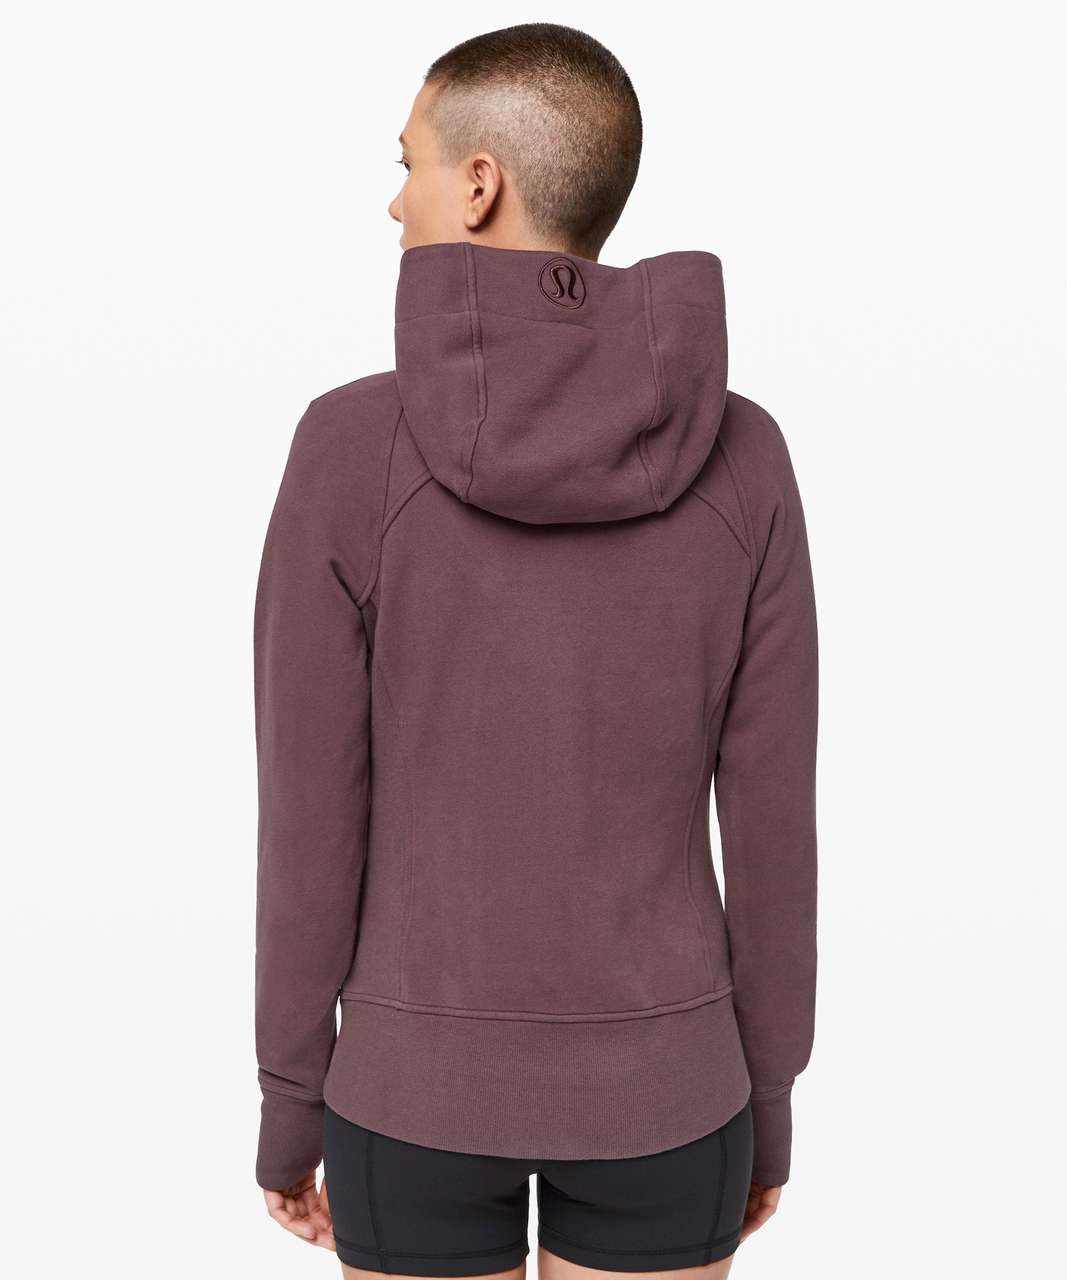 Lululemon Scuba Hoodie *Light Cotton Fleece - Cherry Cola